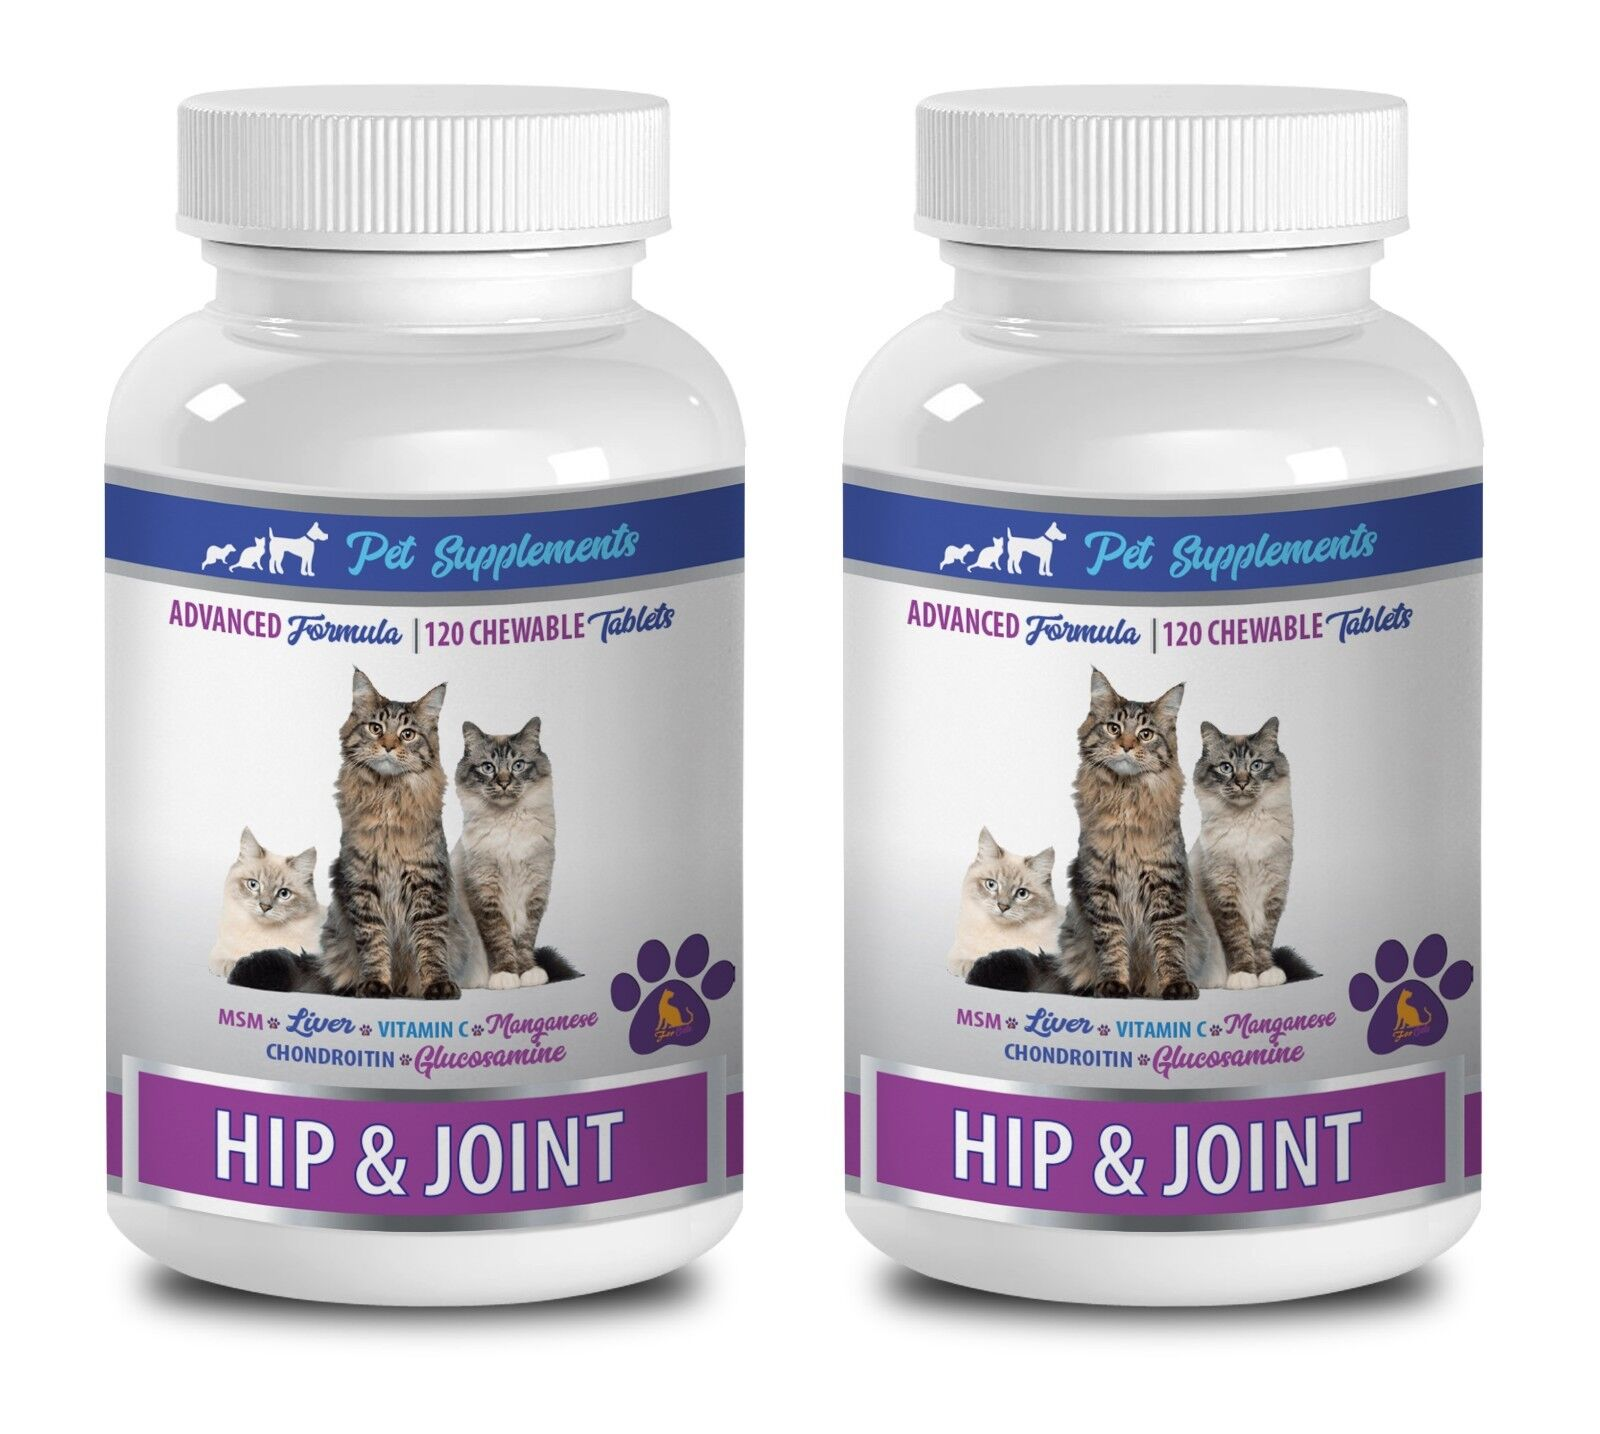 Cat supplements immune - CAT HIP AND JOINT SUPPORT 2B- glucosamine chondroitin